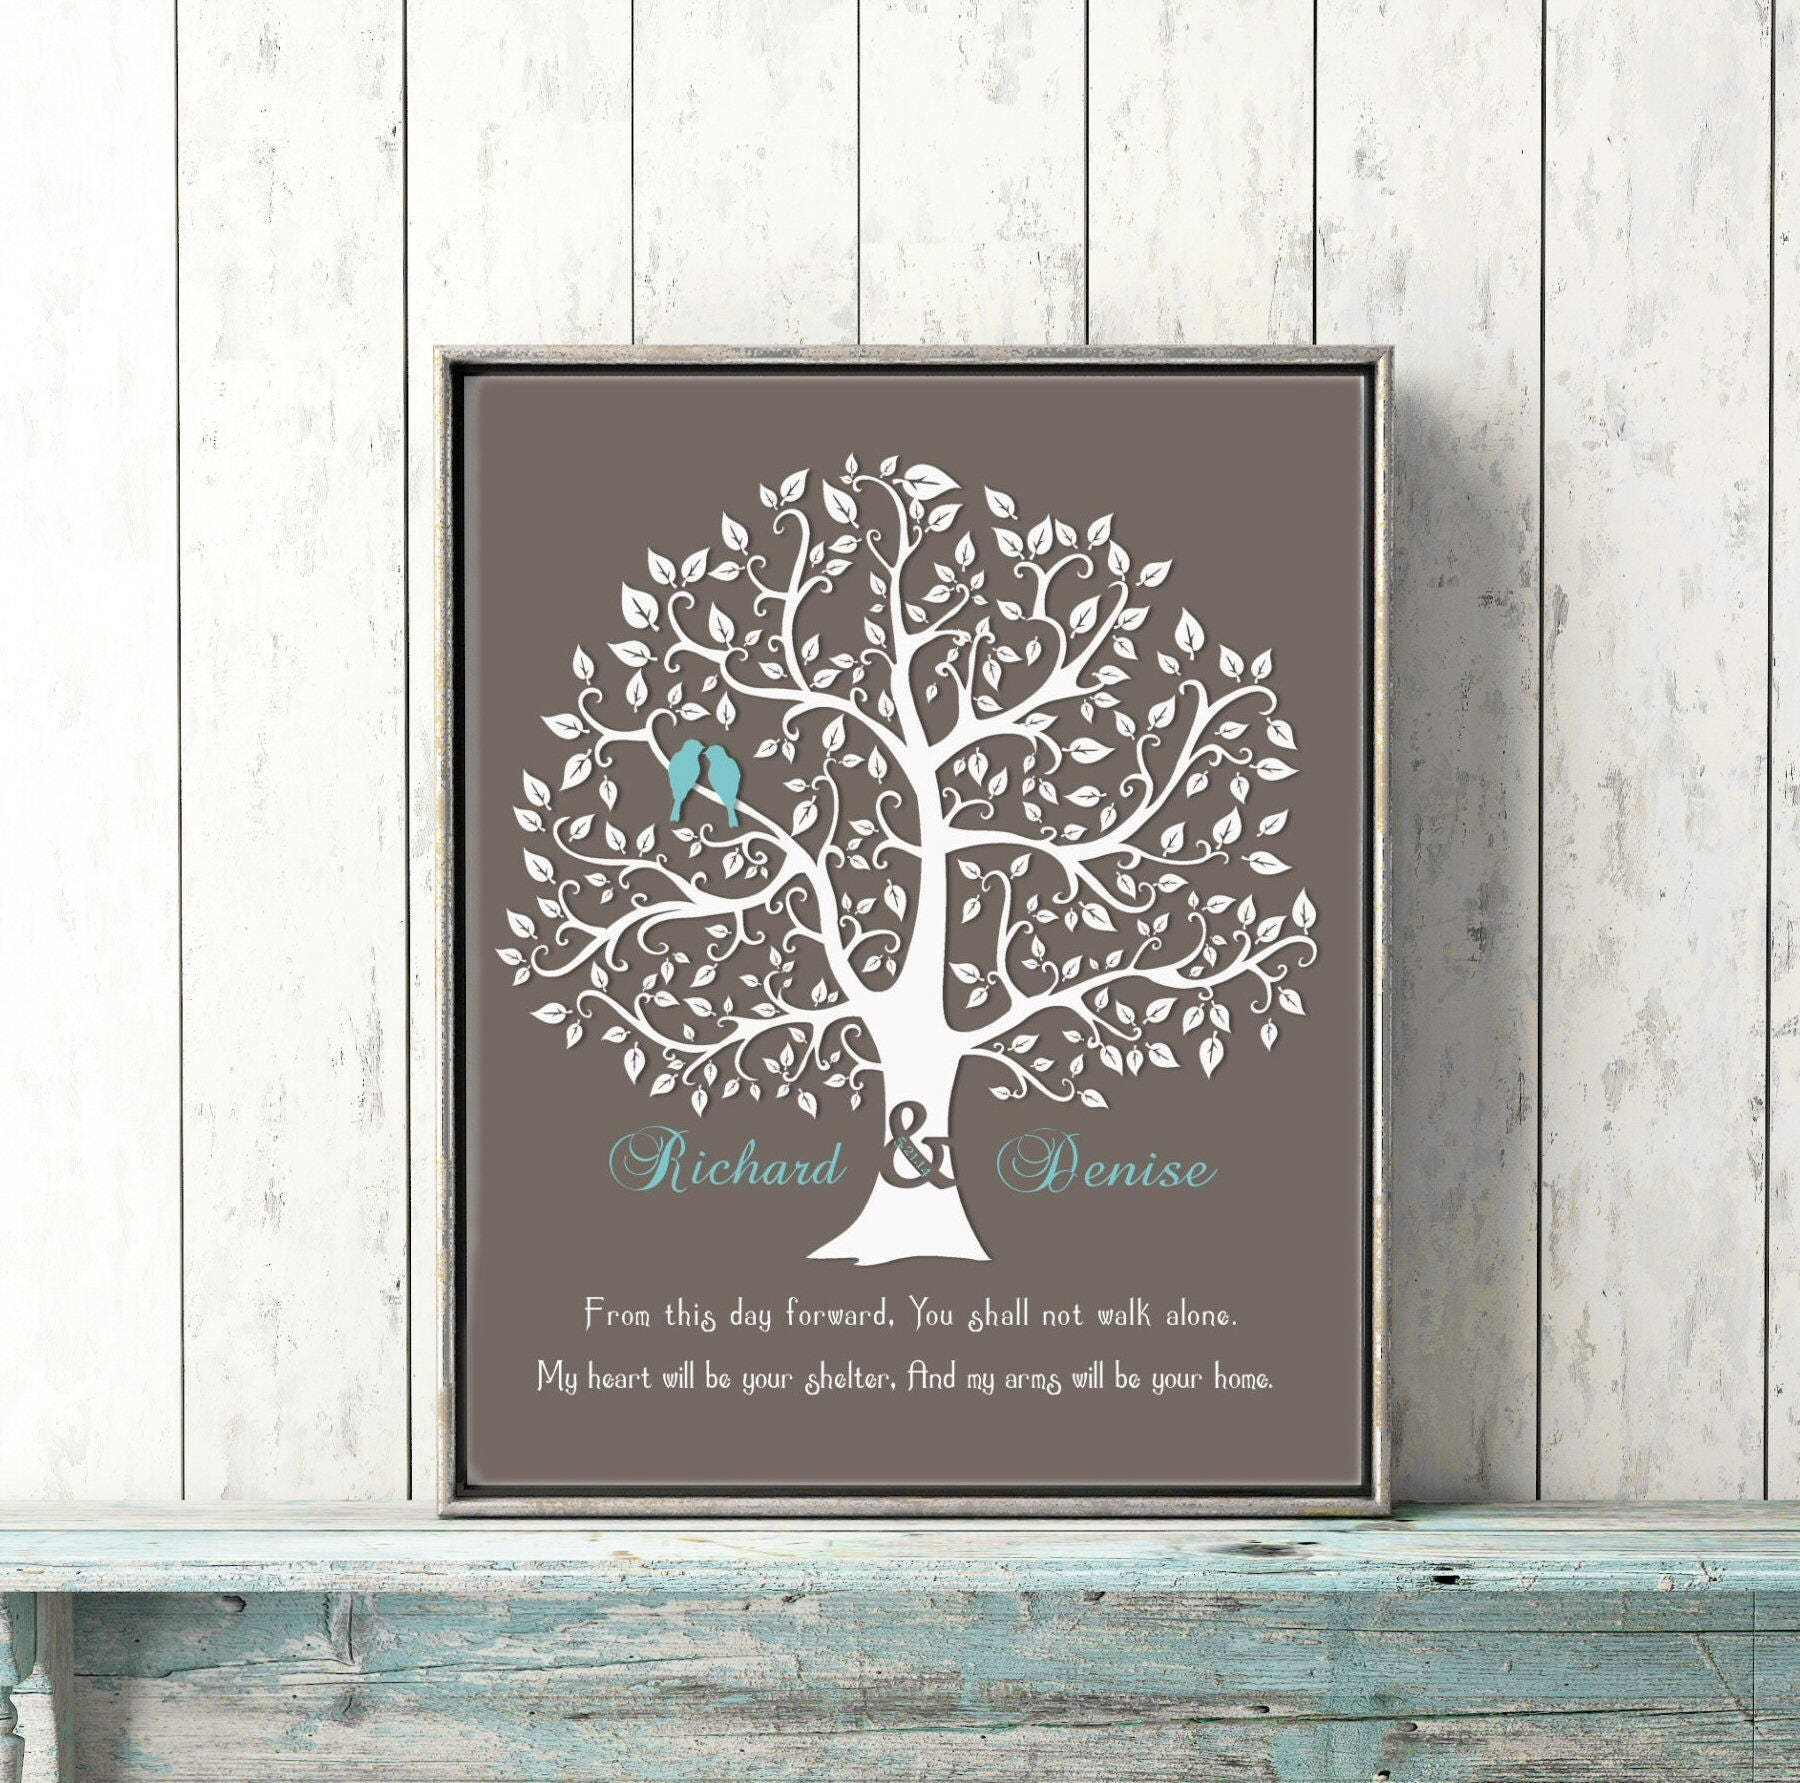 Gift For Fiance On Wedding Day: Personalized WEDDING GIFT For Fiance Wedding Gift For Future